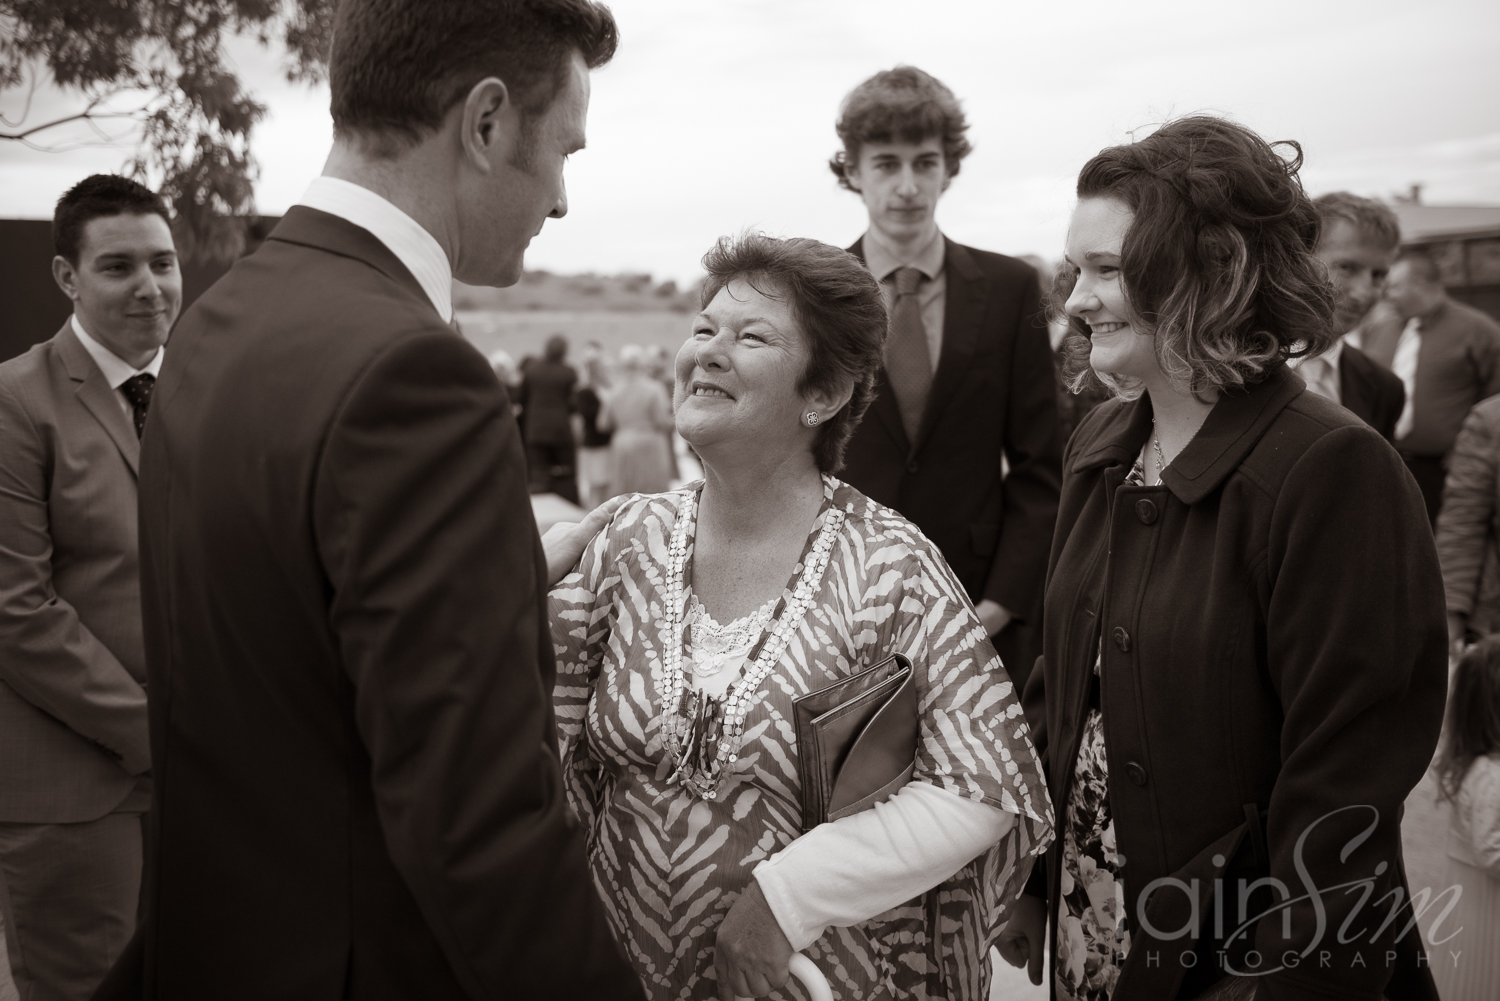 wpid-Bianca-and-Ben-at-Cranbourne-Botanic-Gardnes-by-Iain-Sim-Photography_018.jpg